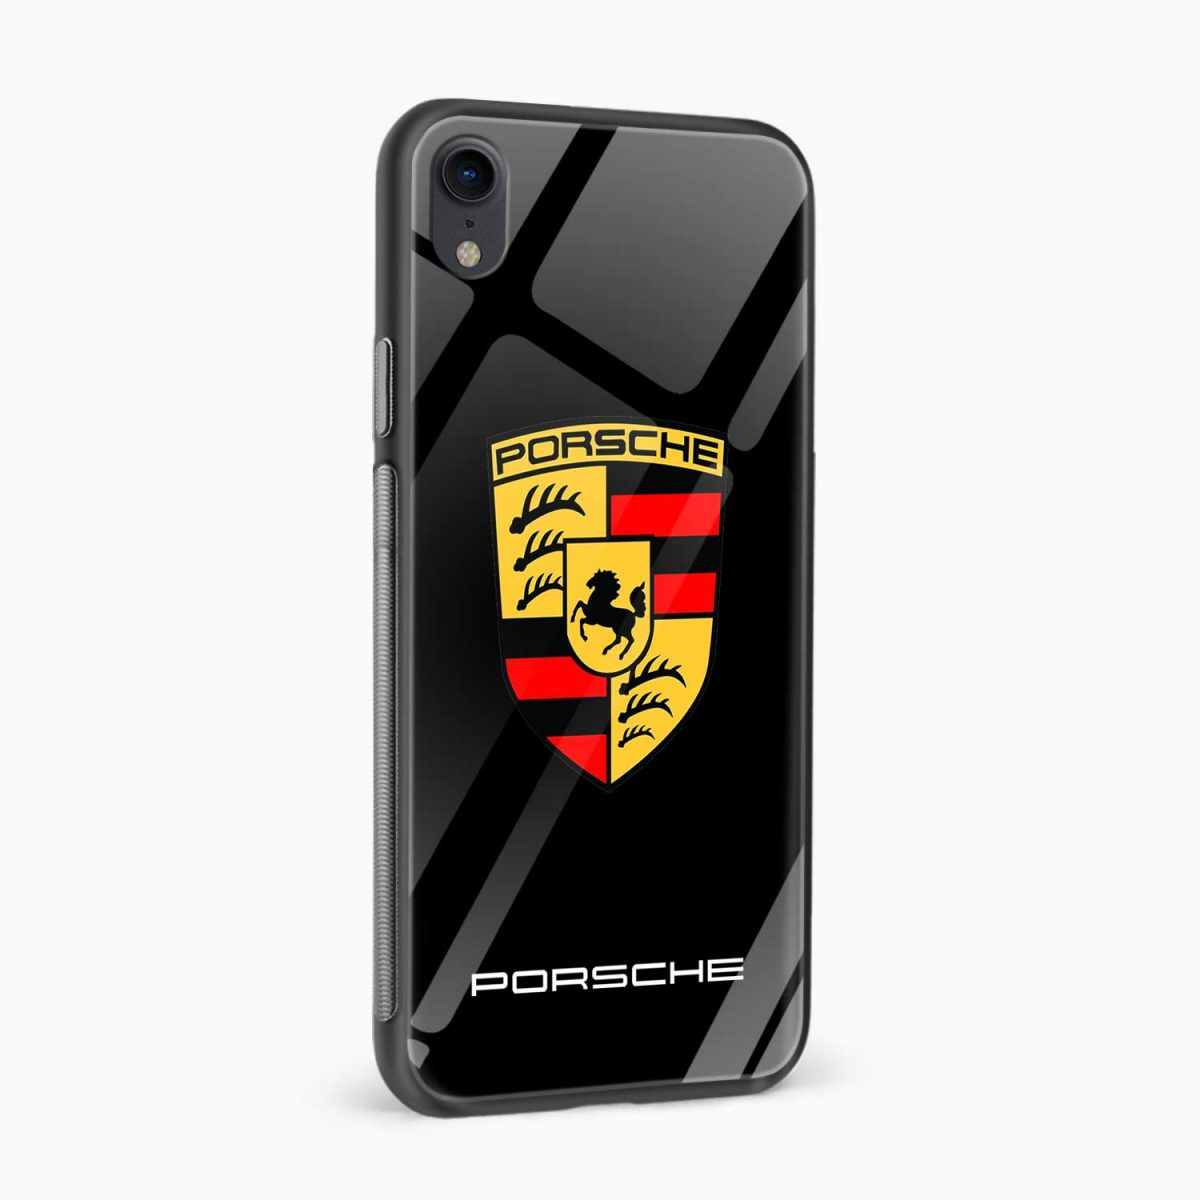 prosche apple iphone xr back cover side view